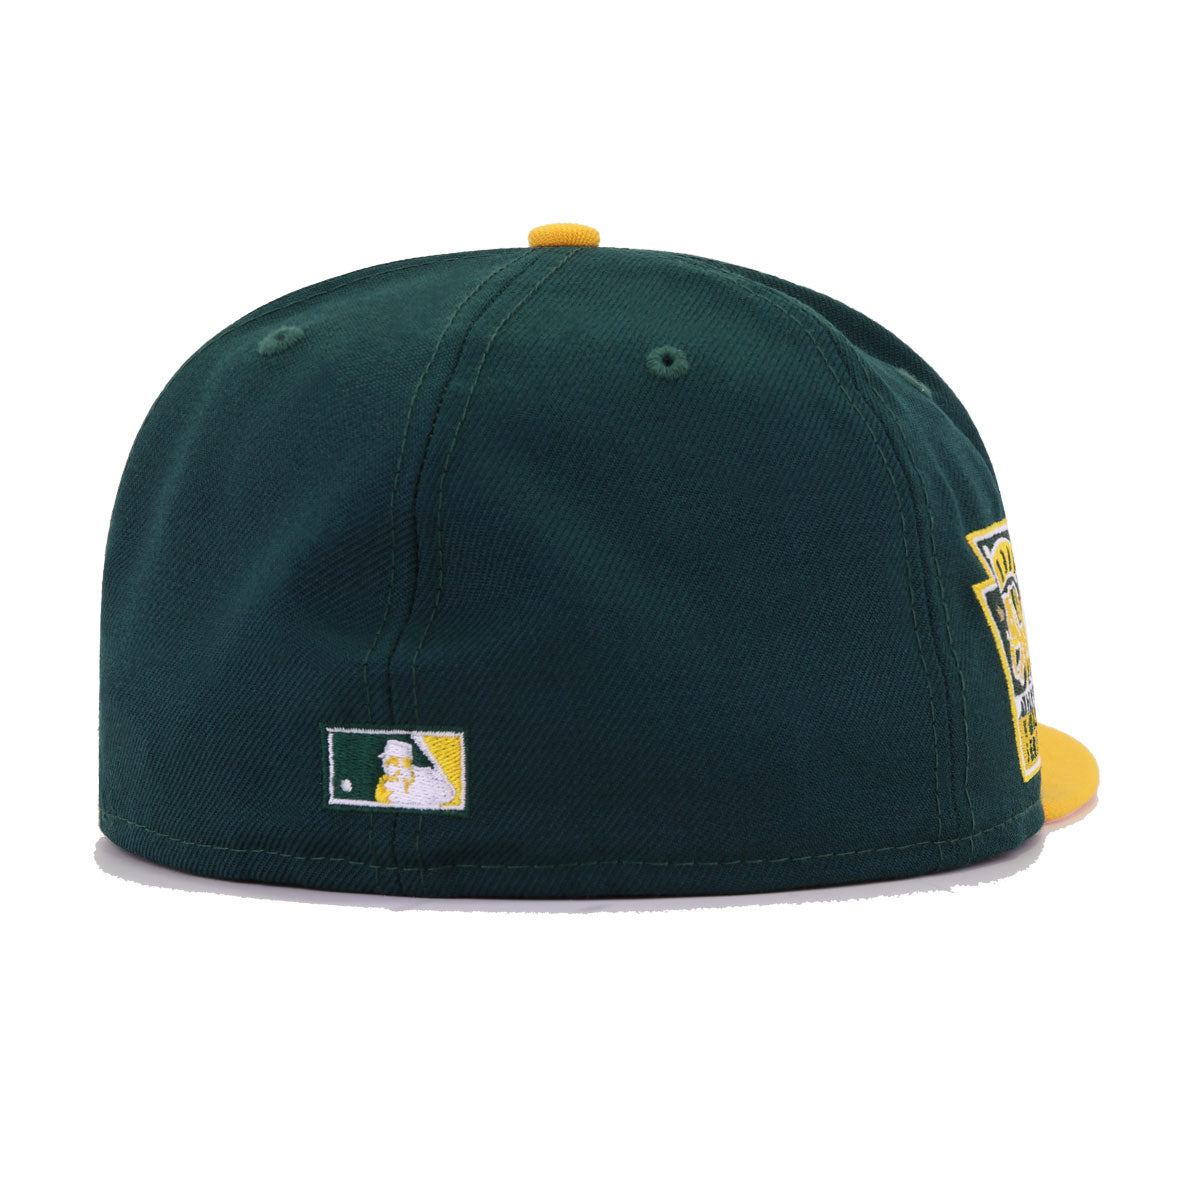 Philadelphia Athletics Dark Green A's Gold 1929 World Series Pink Bottom New Era 59Fifty Fitted